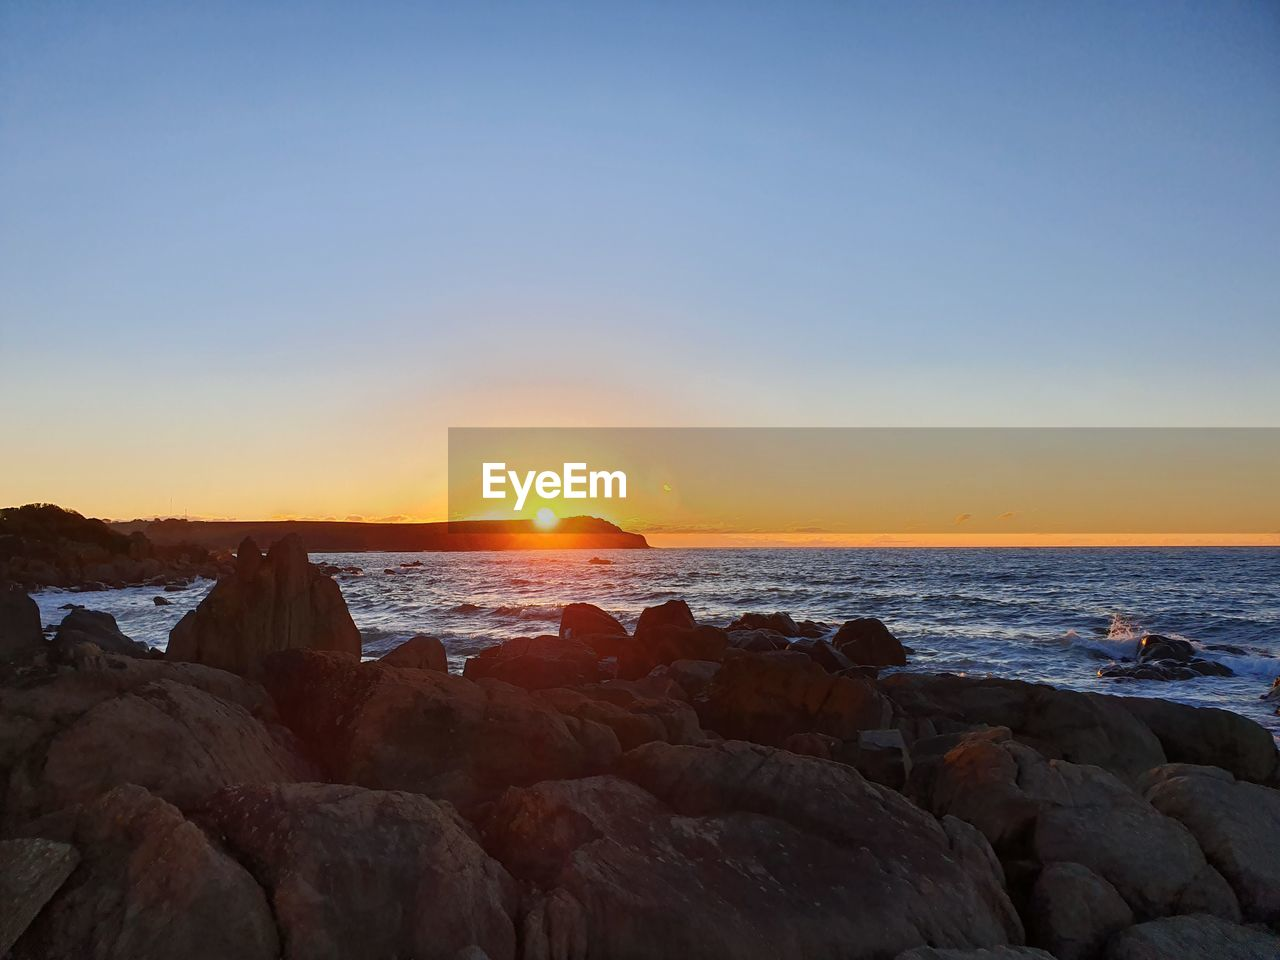 sky, sea, water, sunset, scenics - nature, rock, beauty in nature, solid, rock - object, horizon over water, horizon, sun, tranquility, land, beach, tranquil scene, nature, copy space, idyllic, no people, outdoors